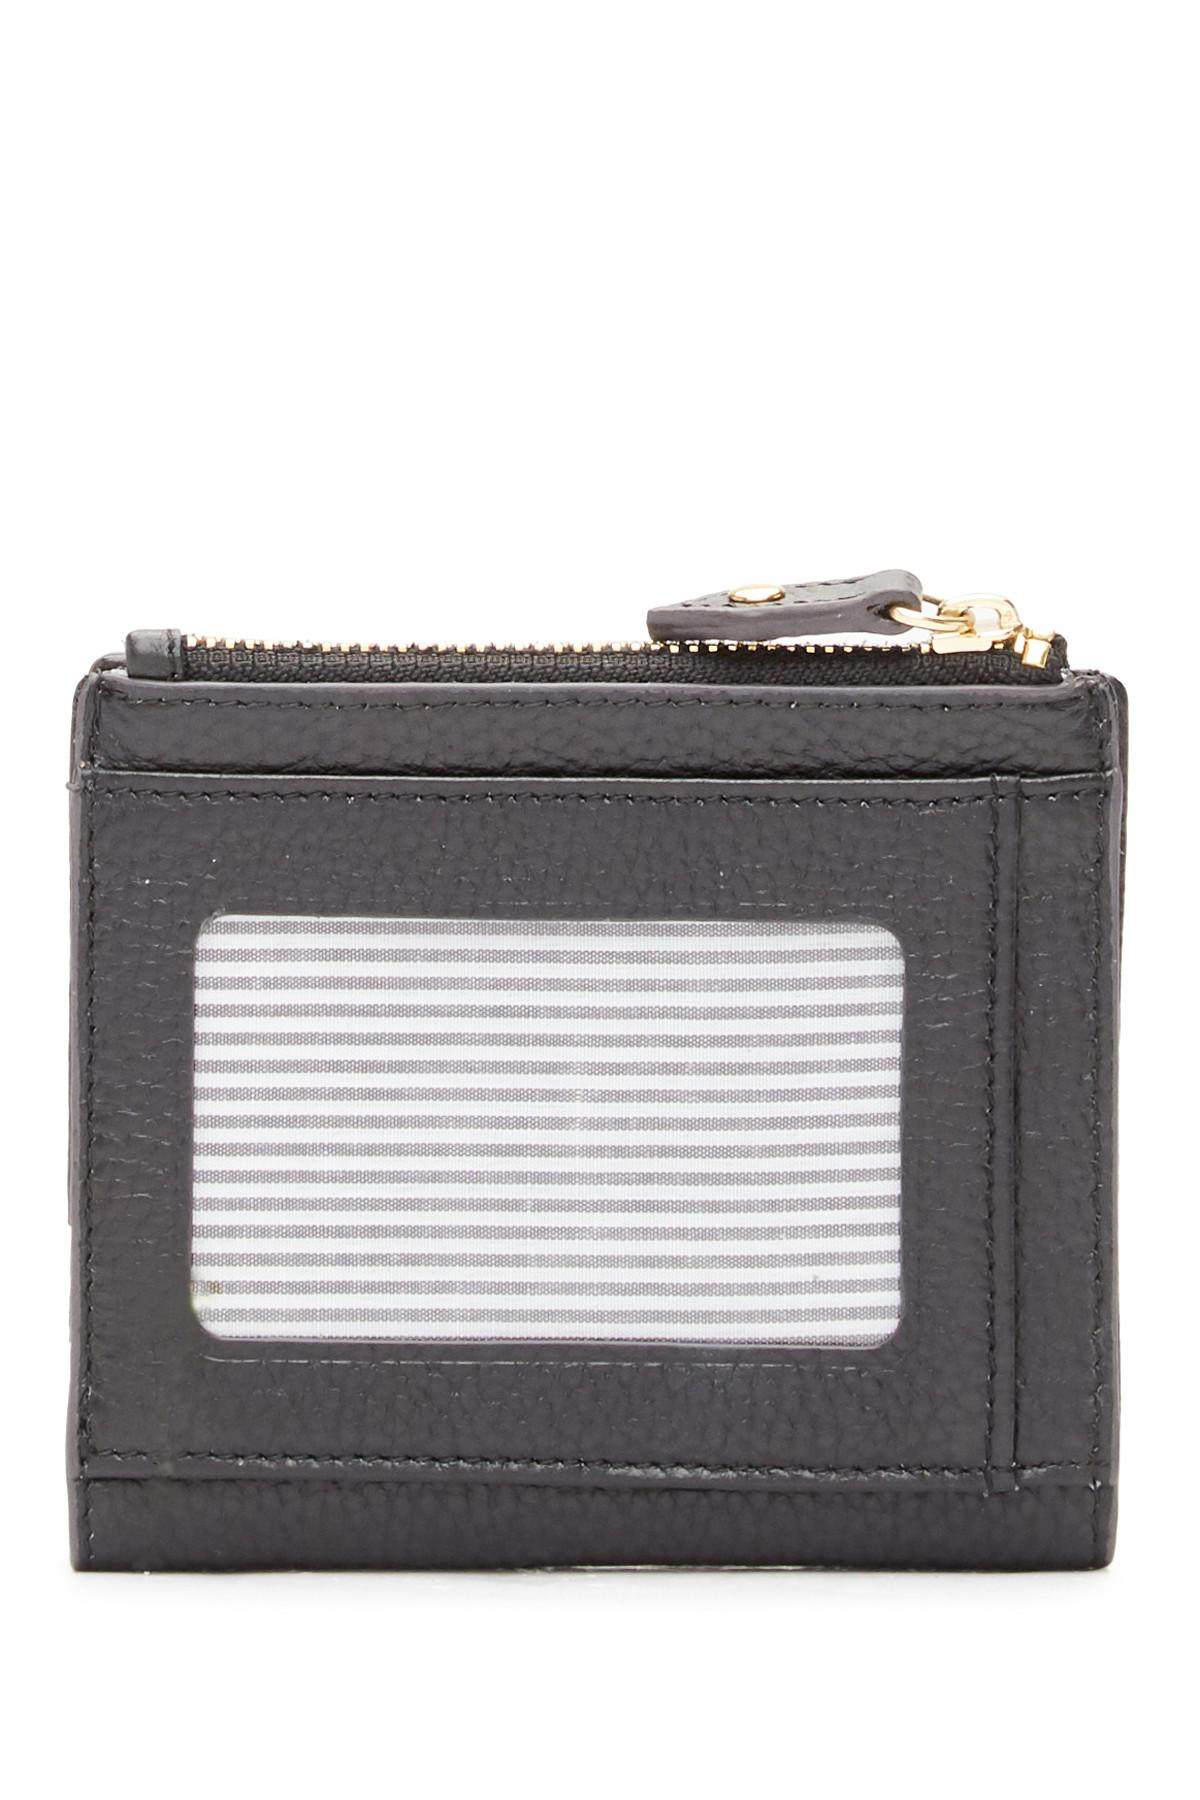 e405bde8ef Lodis - Black Colleen French Leather Wallet - Lyst. View fullscreen